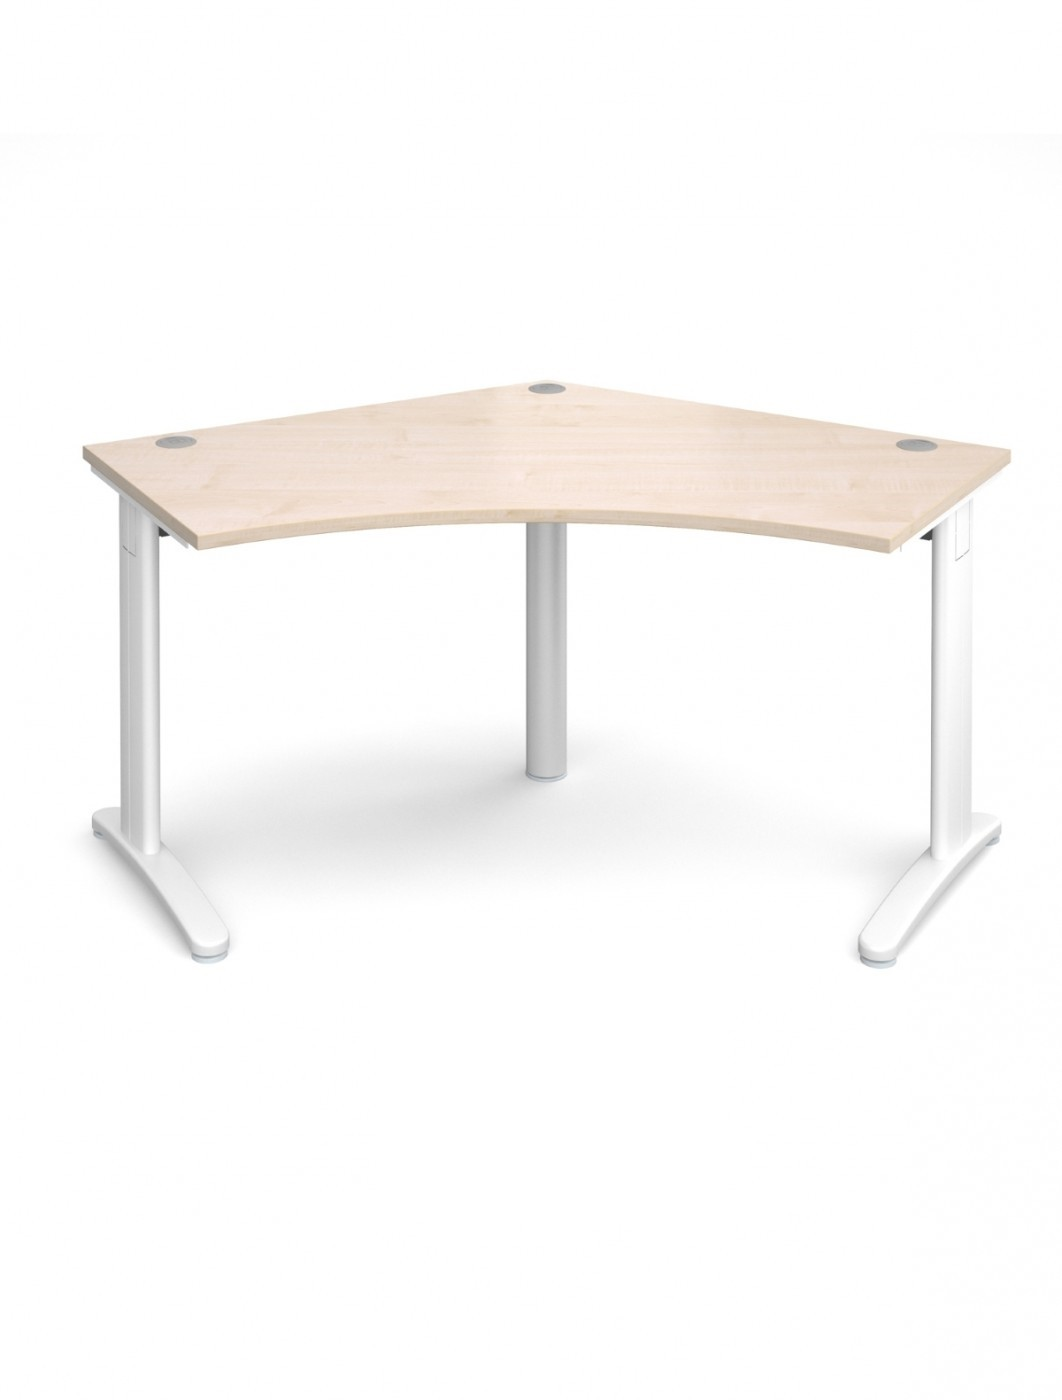 Maple Office Desk Dams TR10 120 Degree Desk T120M   Enlarged View